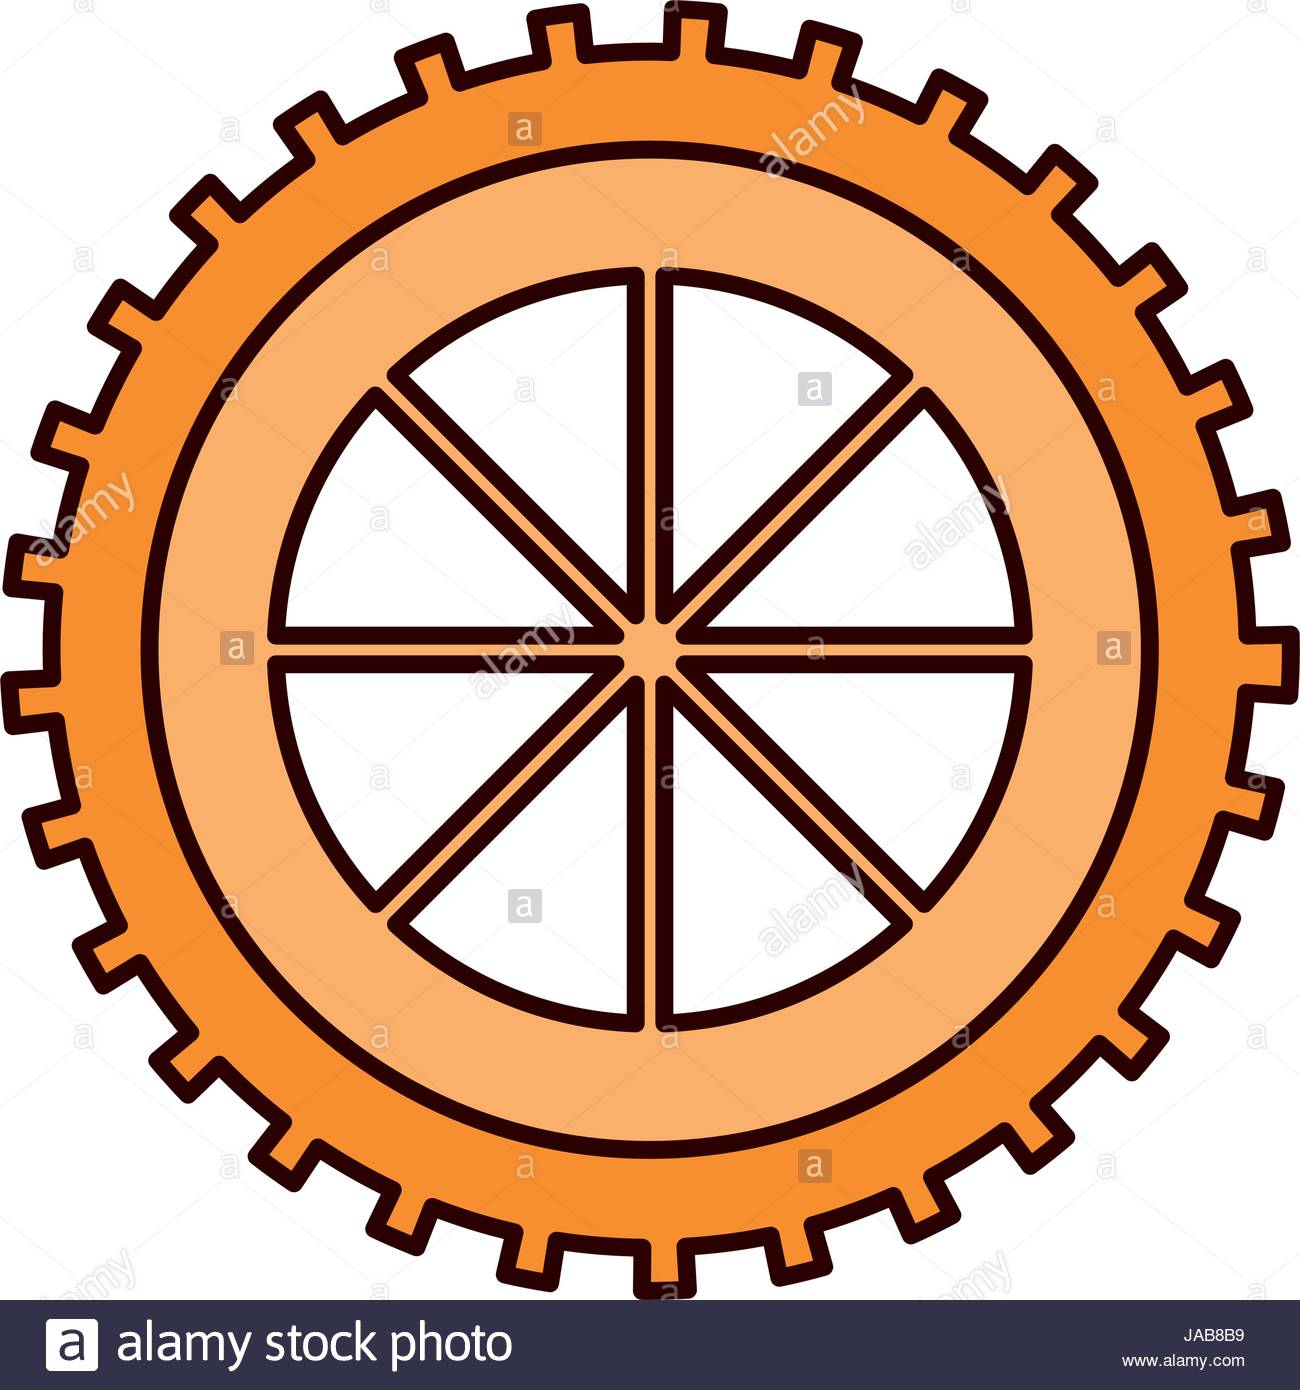 1300x1390 Color Sketch Silhouette Gear Wheel Component Icon Stock Vector Art